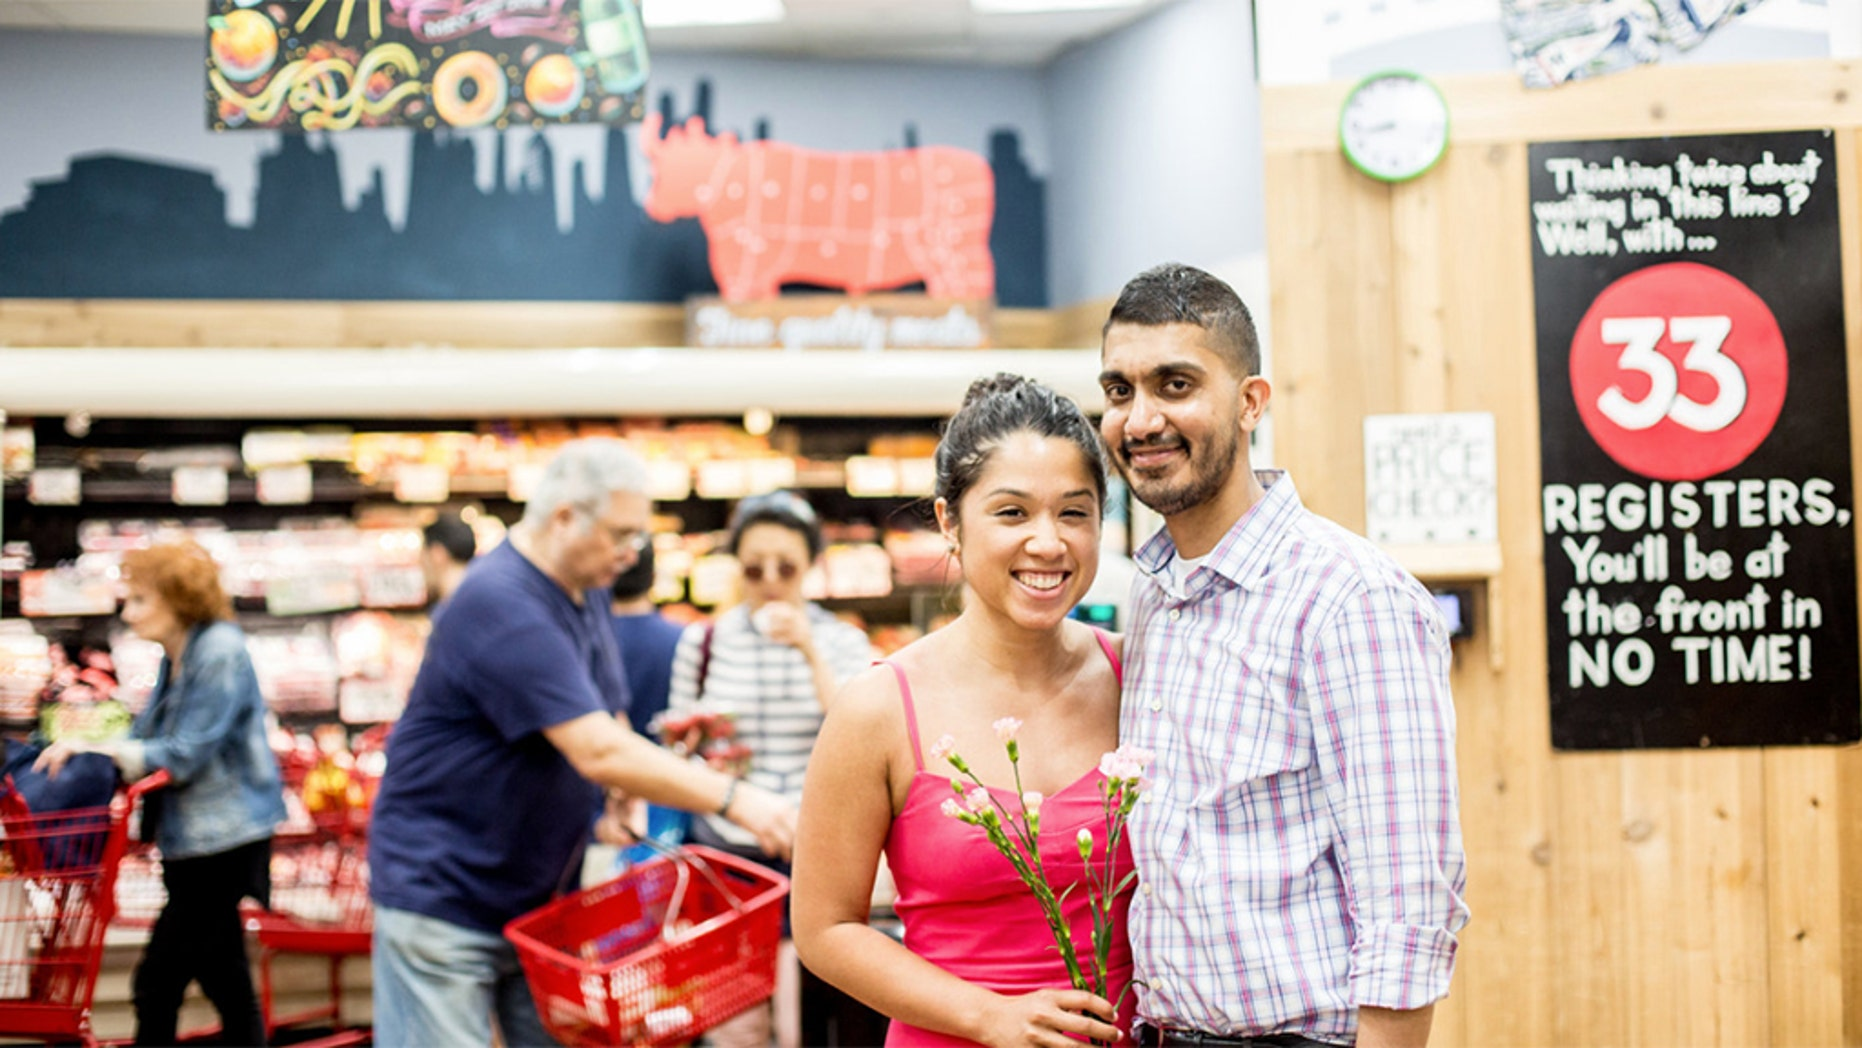 The lovebirds got engaged at their favorite Trader Joe's in New York City.